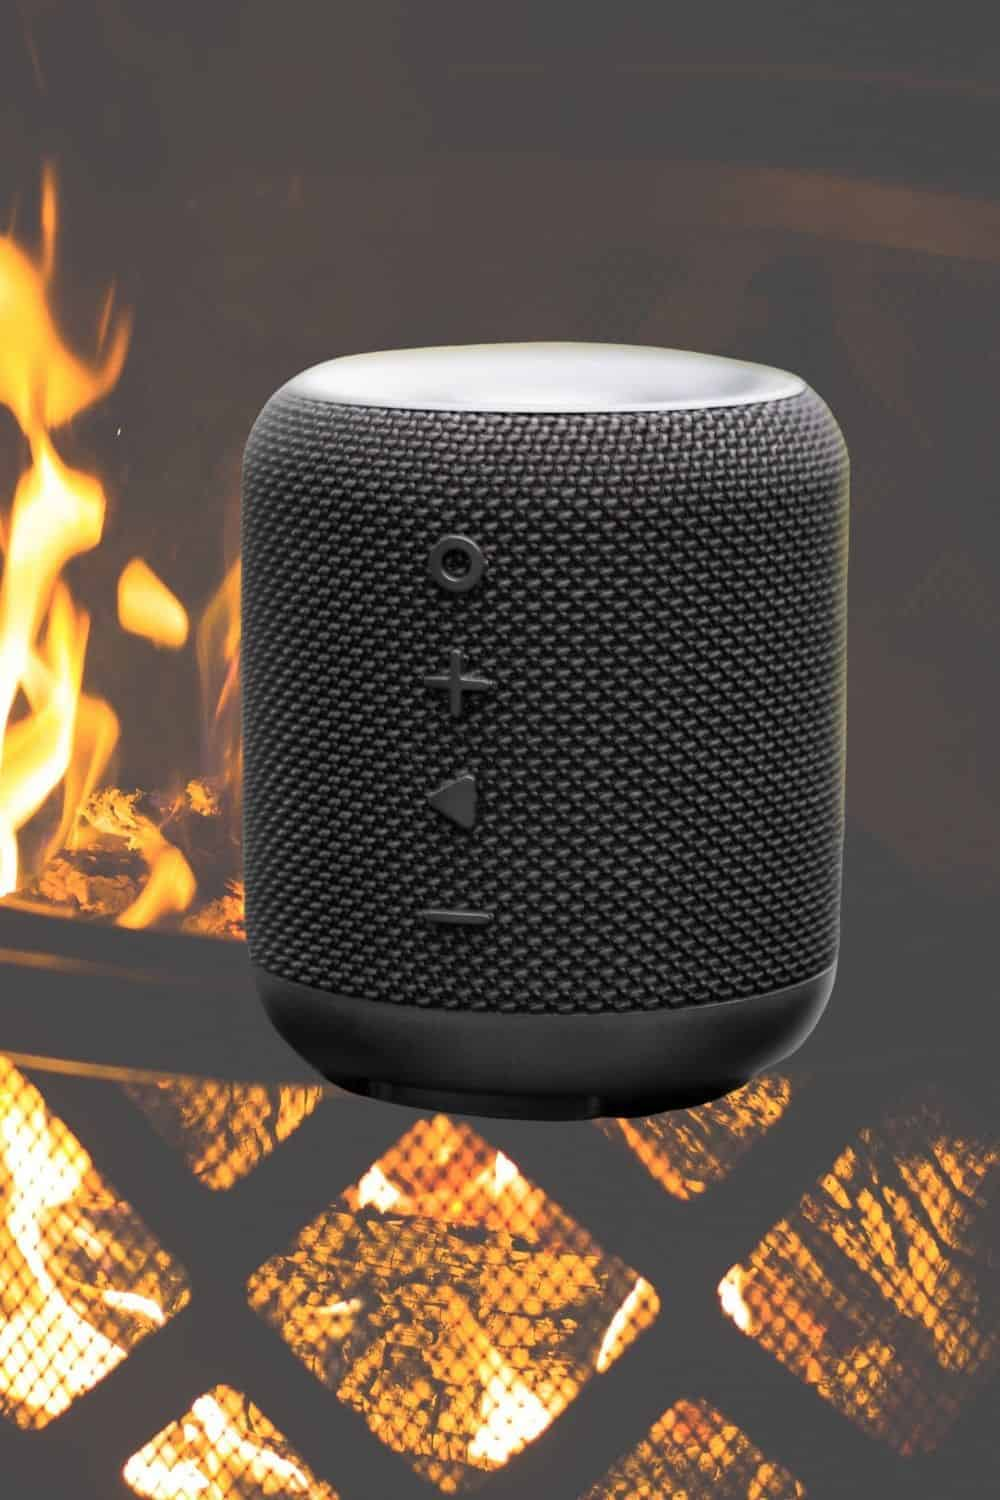 portable speaker is a useful fire pit accessory for fun